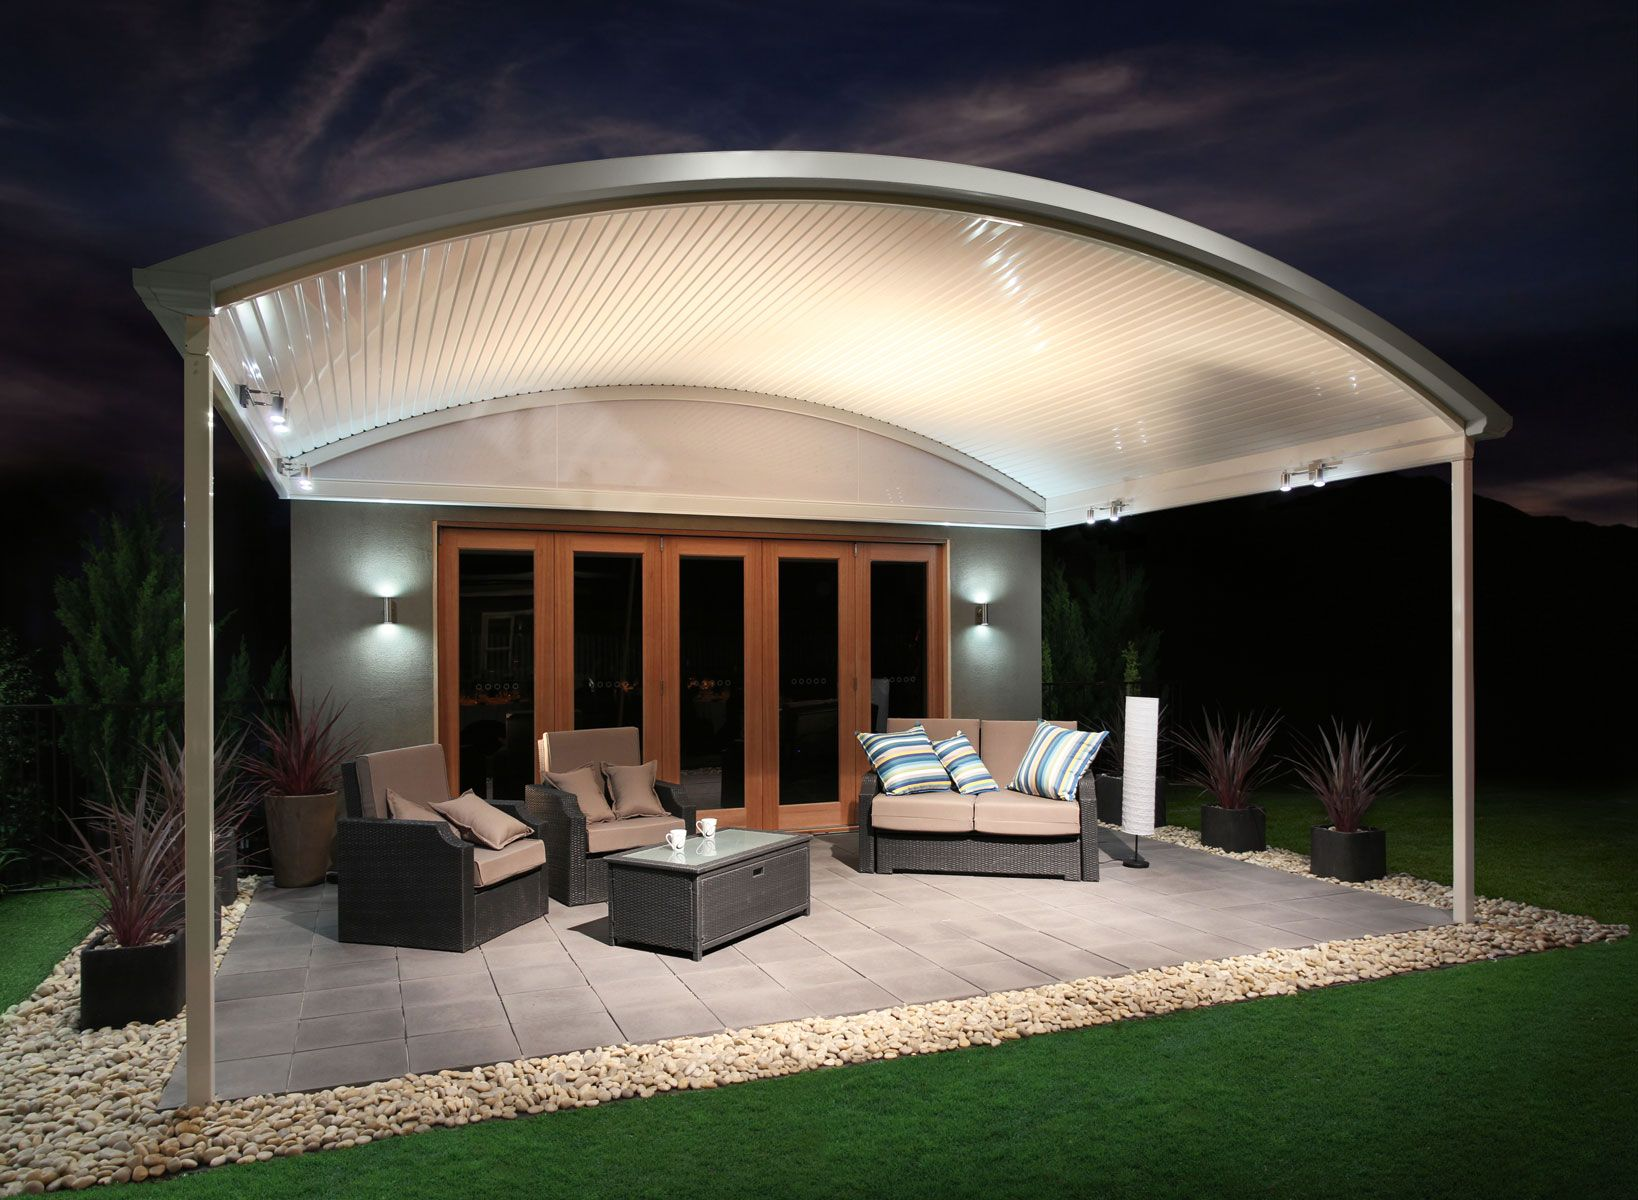 The Stratco Outback Curved Roof Patio Is A Unique Sleek